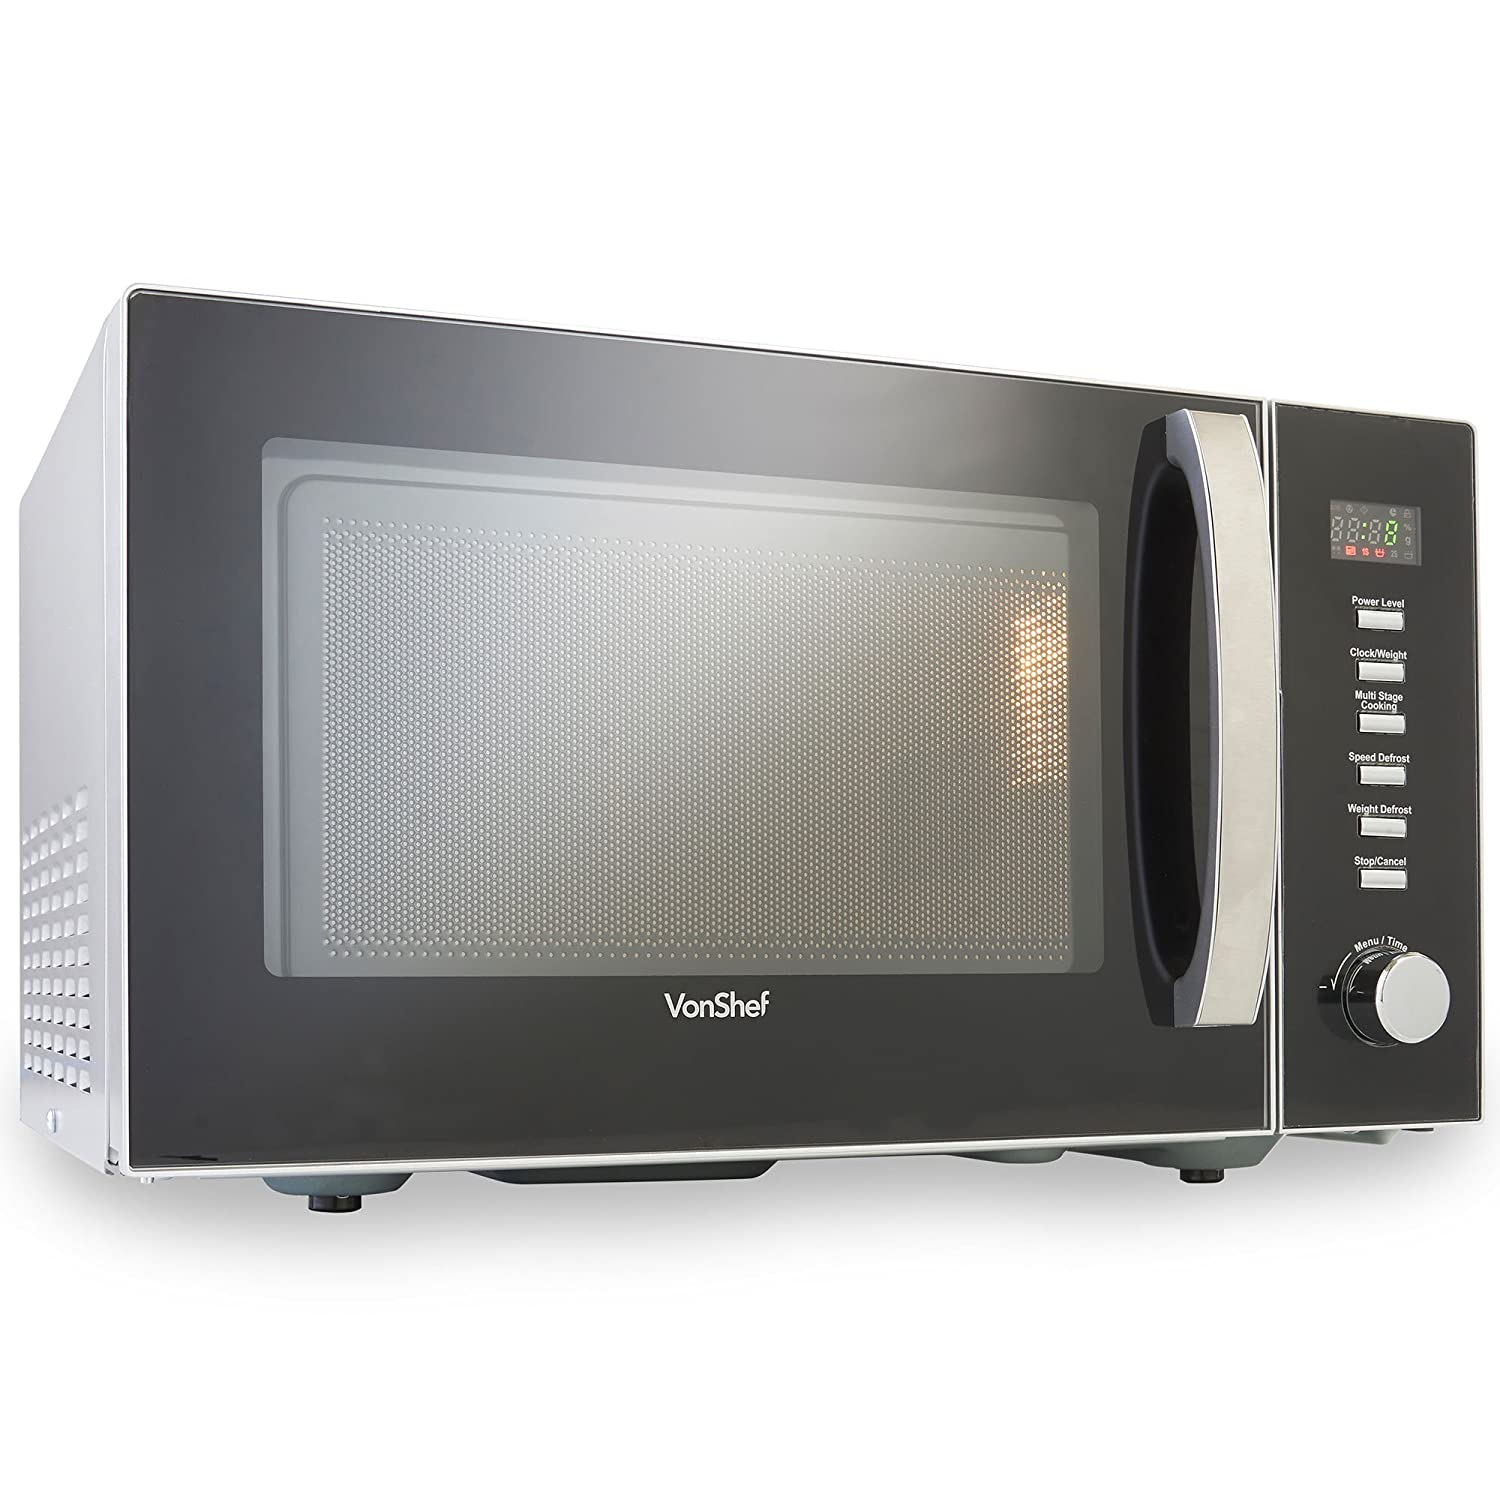 VonShef Large 23L Digital Microwave Oven – Easy to Operate Family Sized Microwave with Digital Display, Child Lock, Defrost & Multi-Stage Cooking Functions – 900W